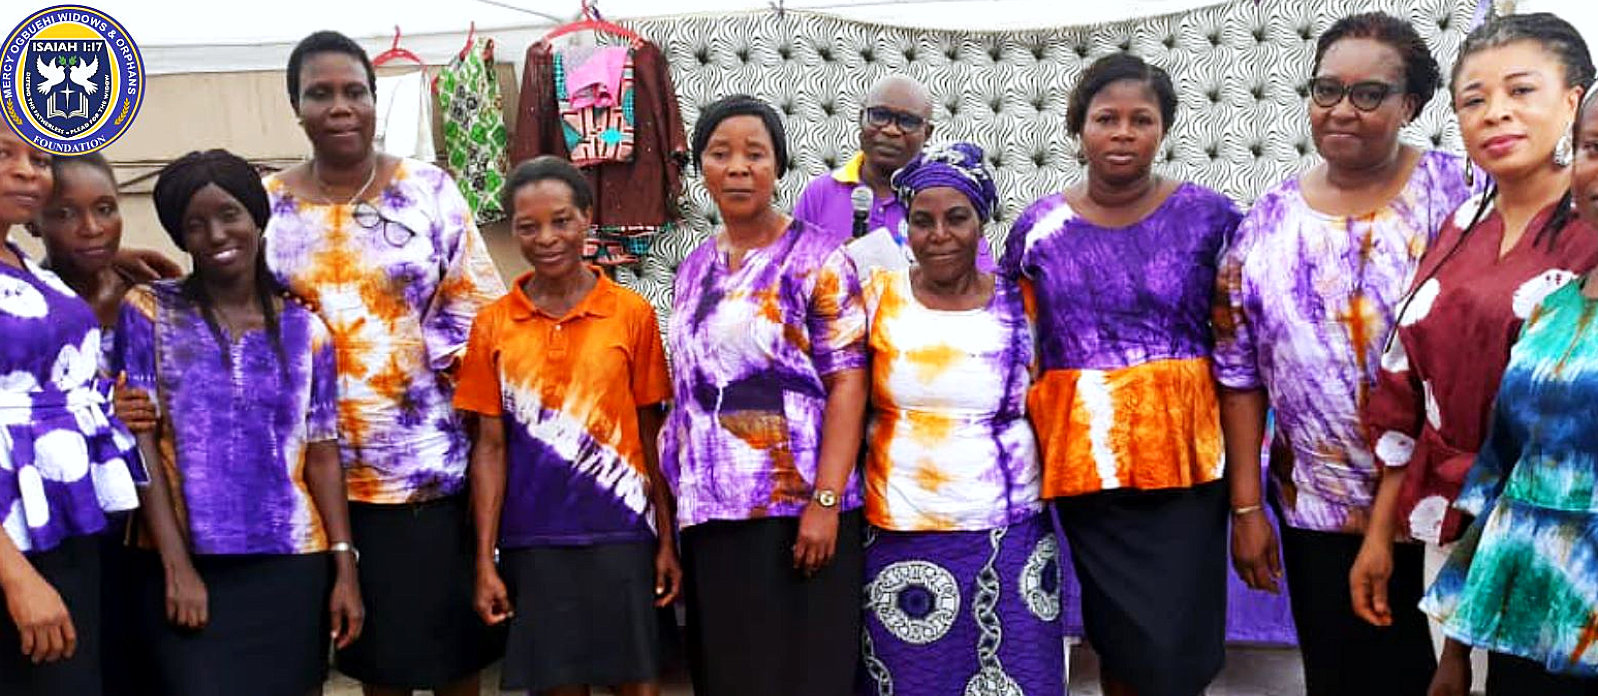 group of elderly in united colored shirts smiling